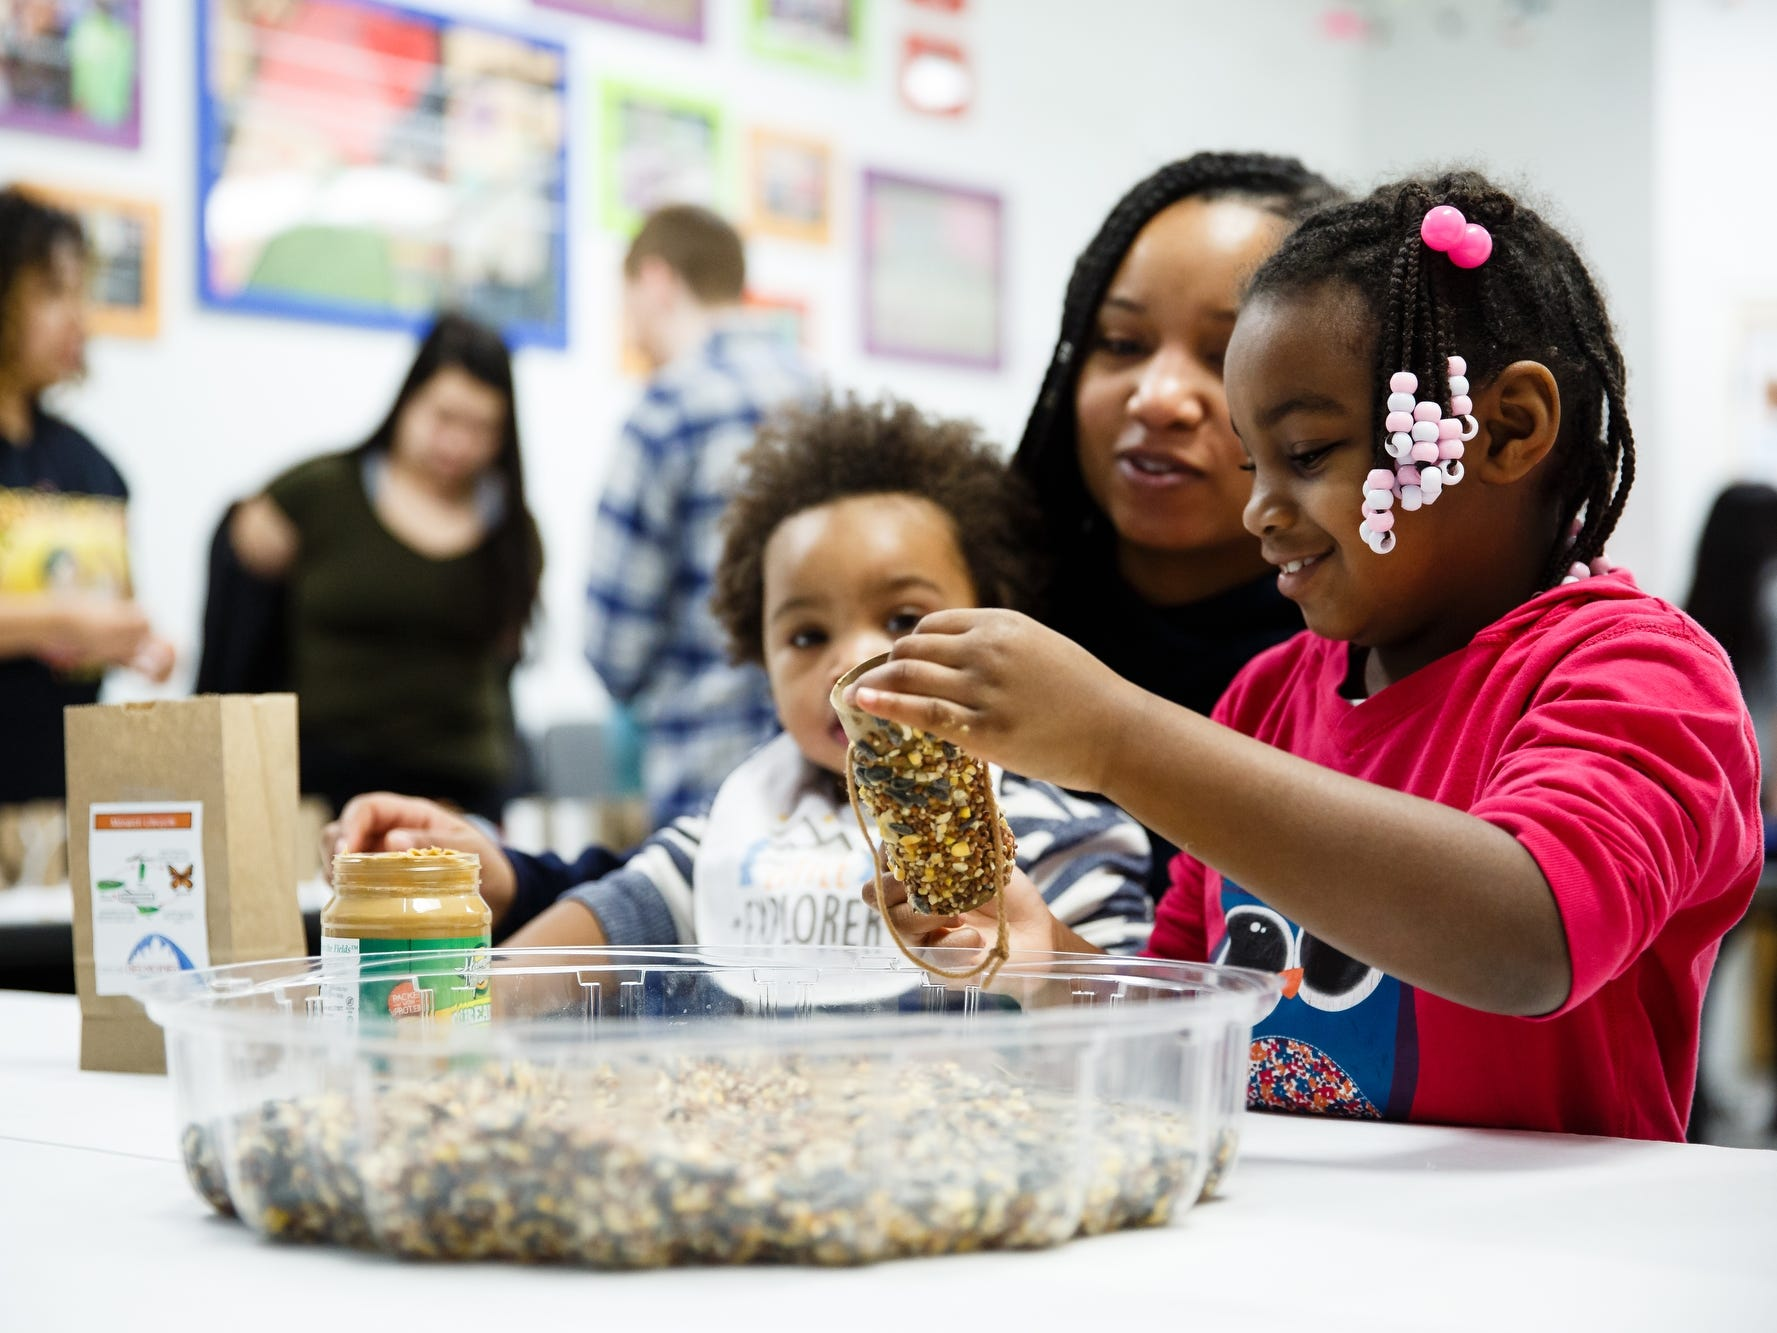 Elias Mitchell makes a bird feeder as her mother Jowelle watches during Martin Luther King Jr. day  activities at Community Youth Concepts in Des Moines, Iowa.